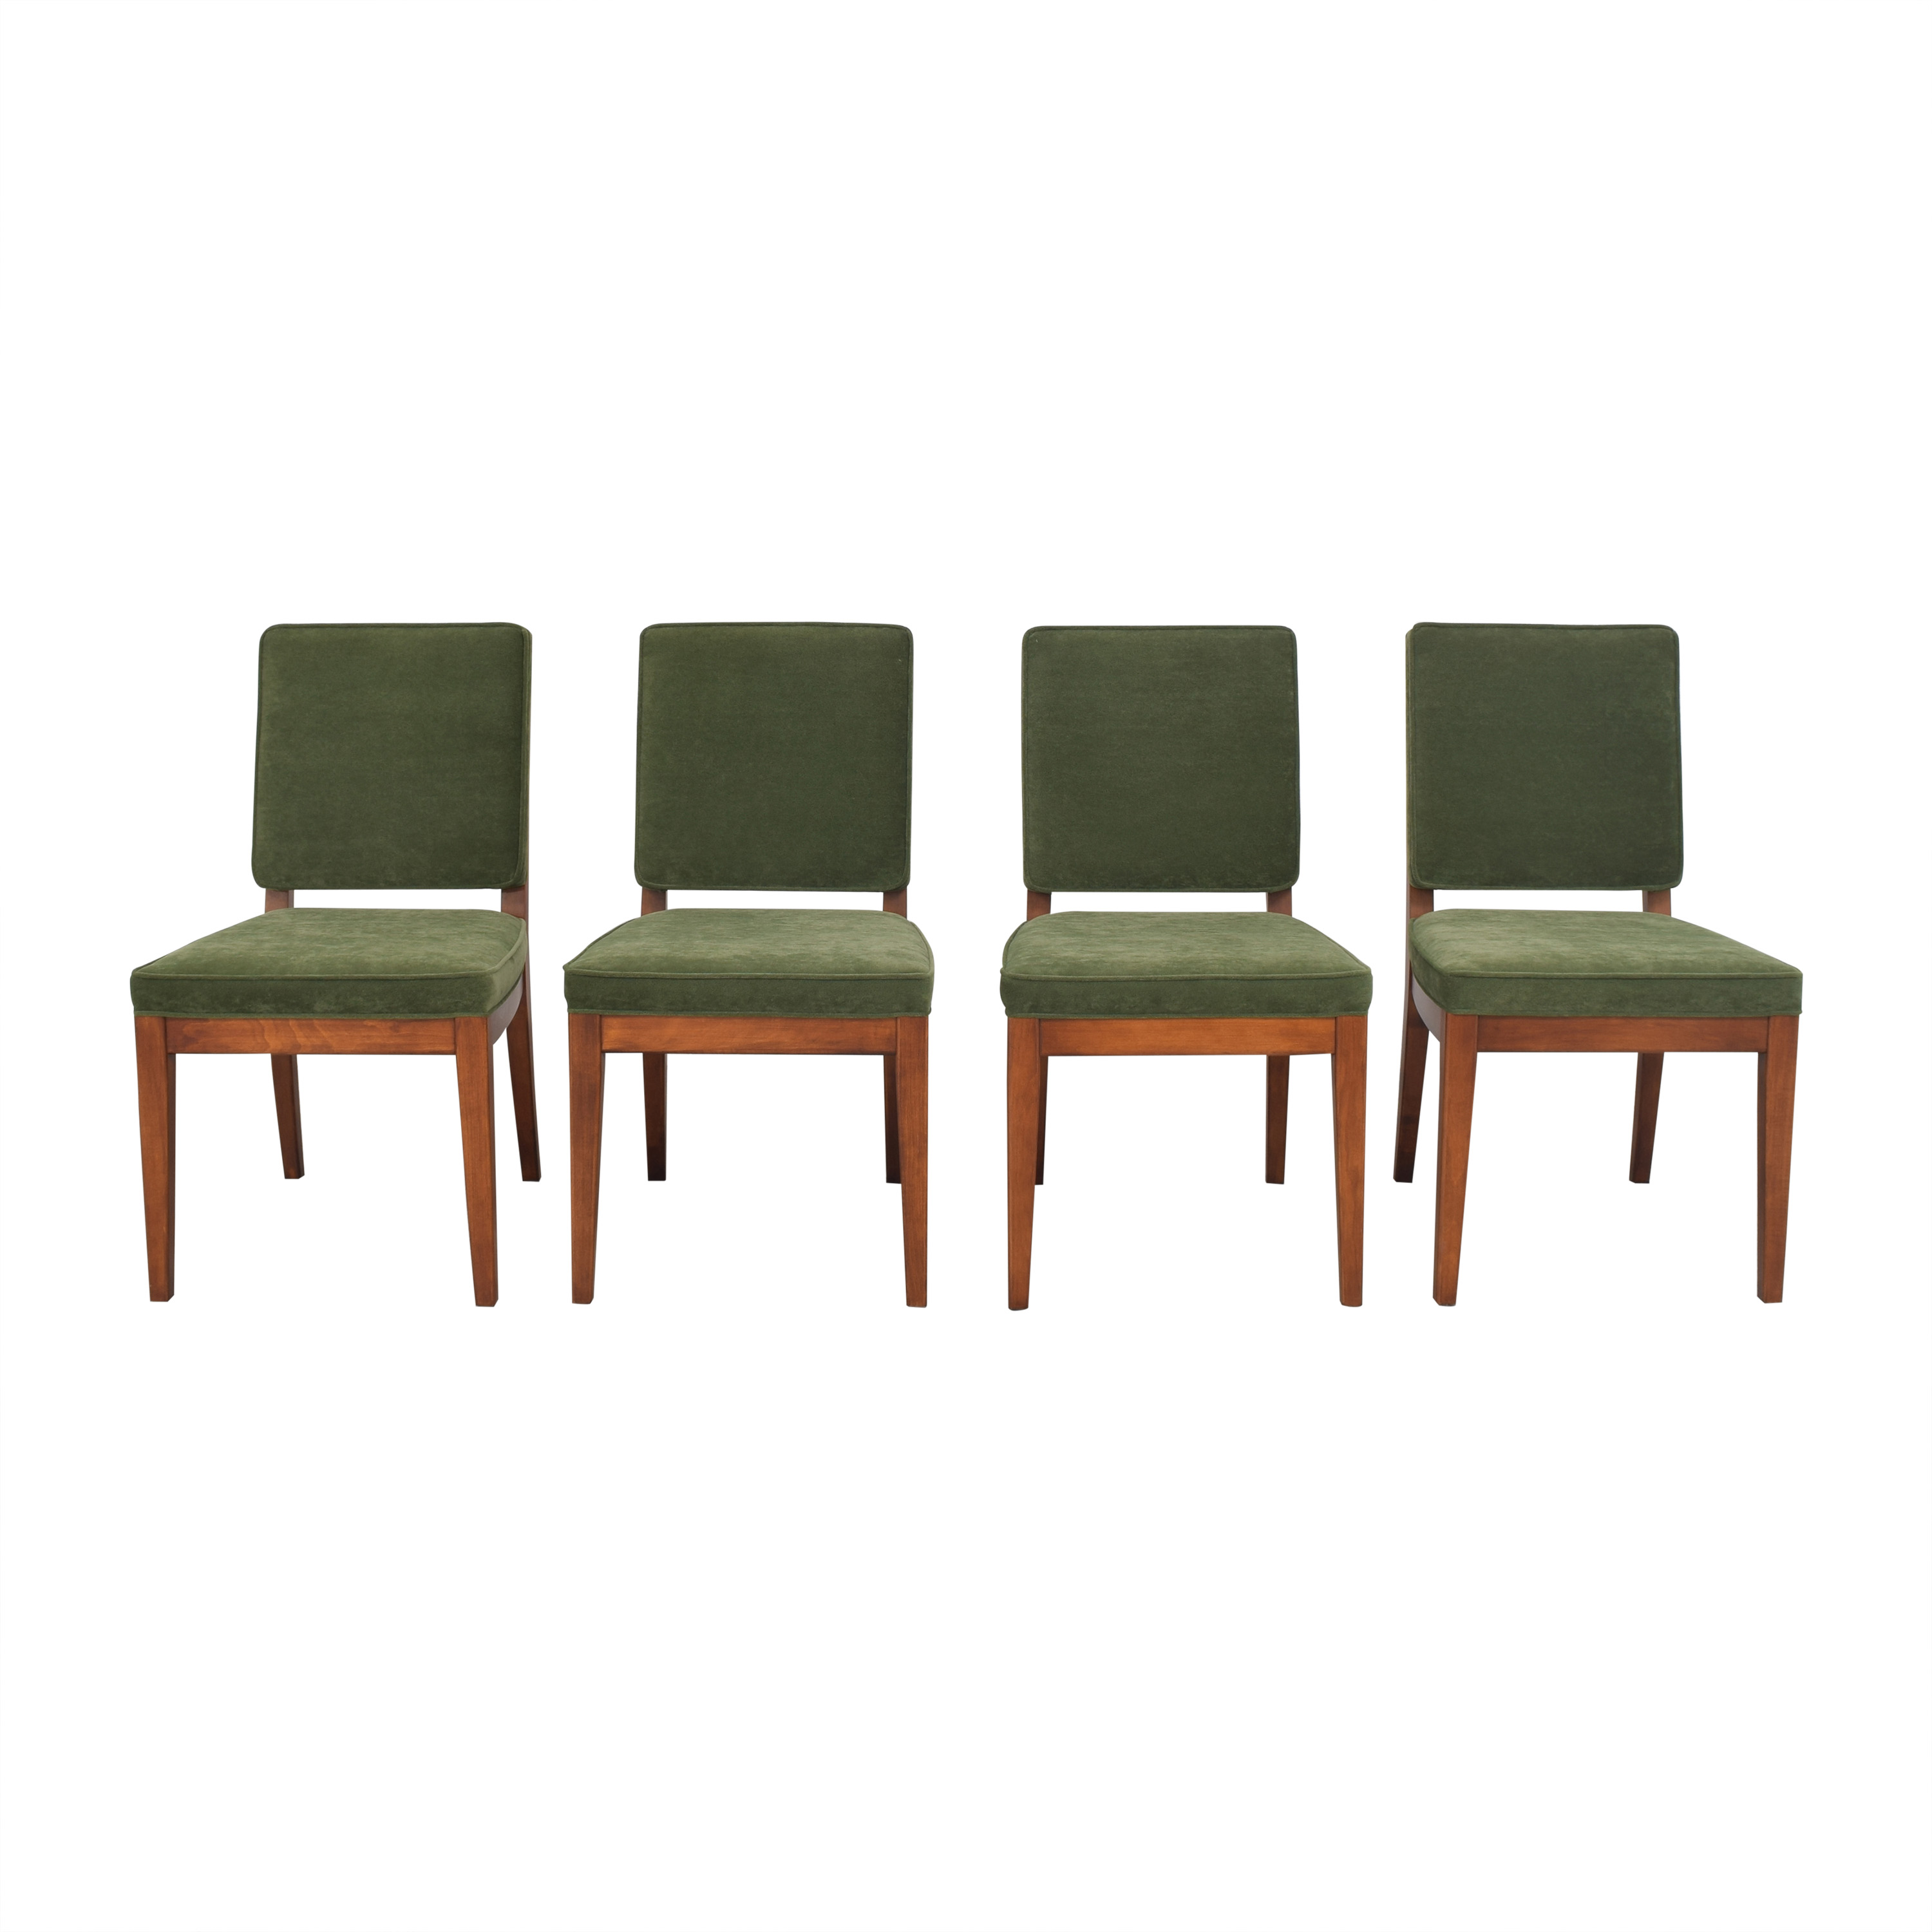 buy Stickley Furniture Carmel Side Chairs Stickley Furniture Dining Chairs